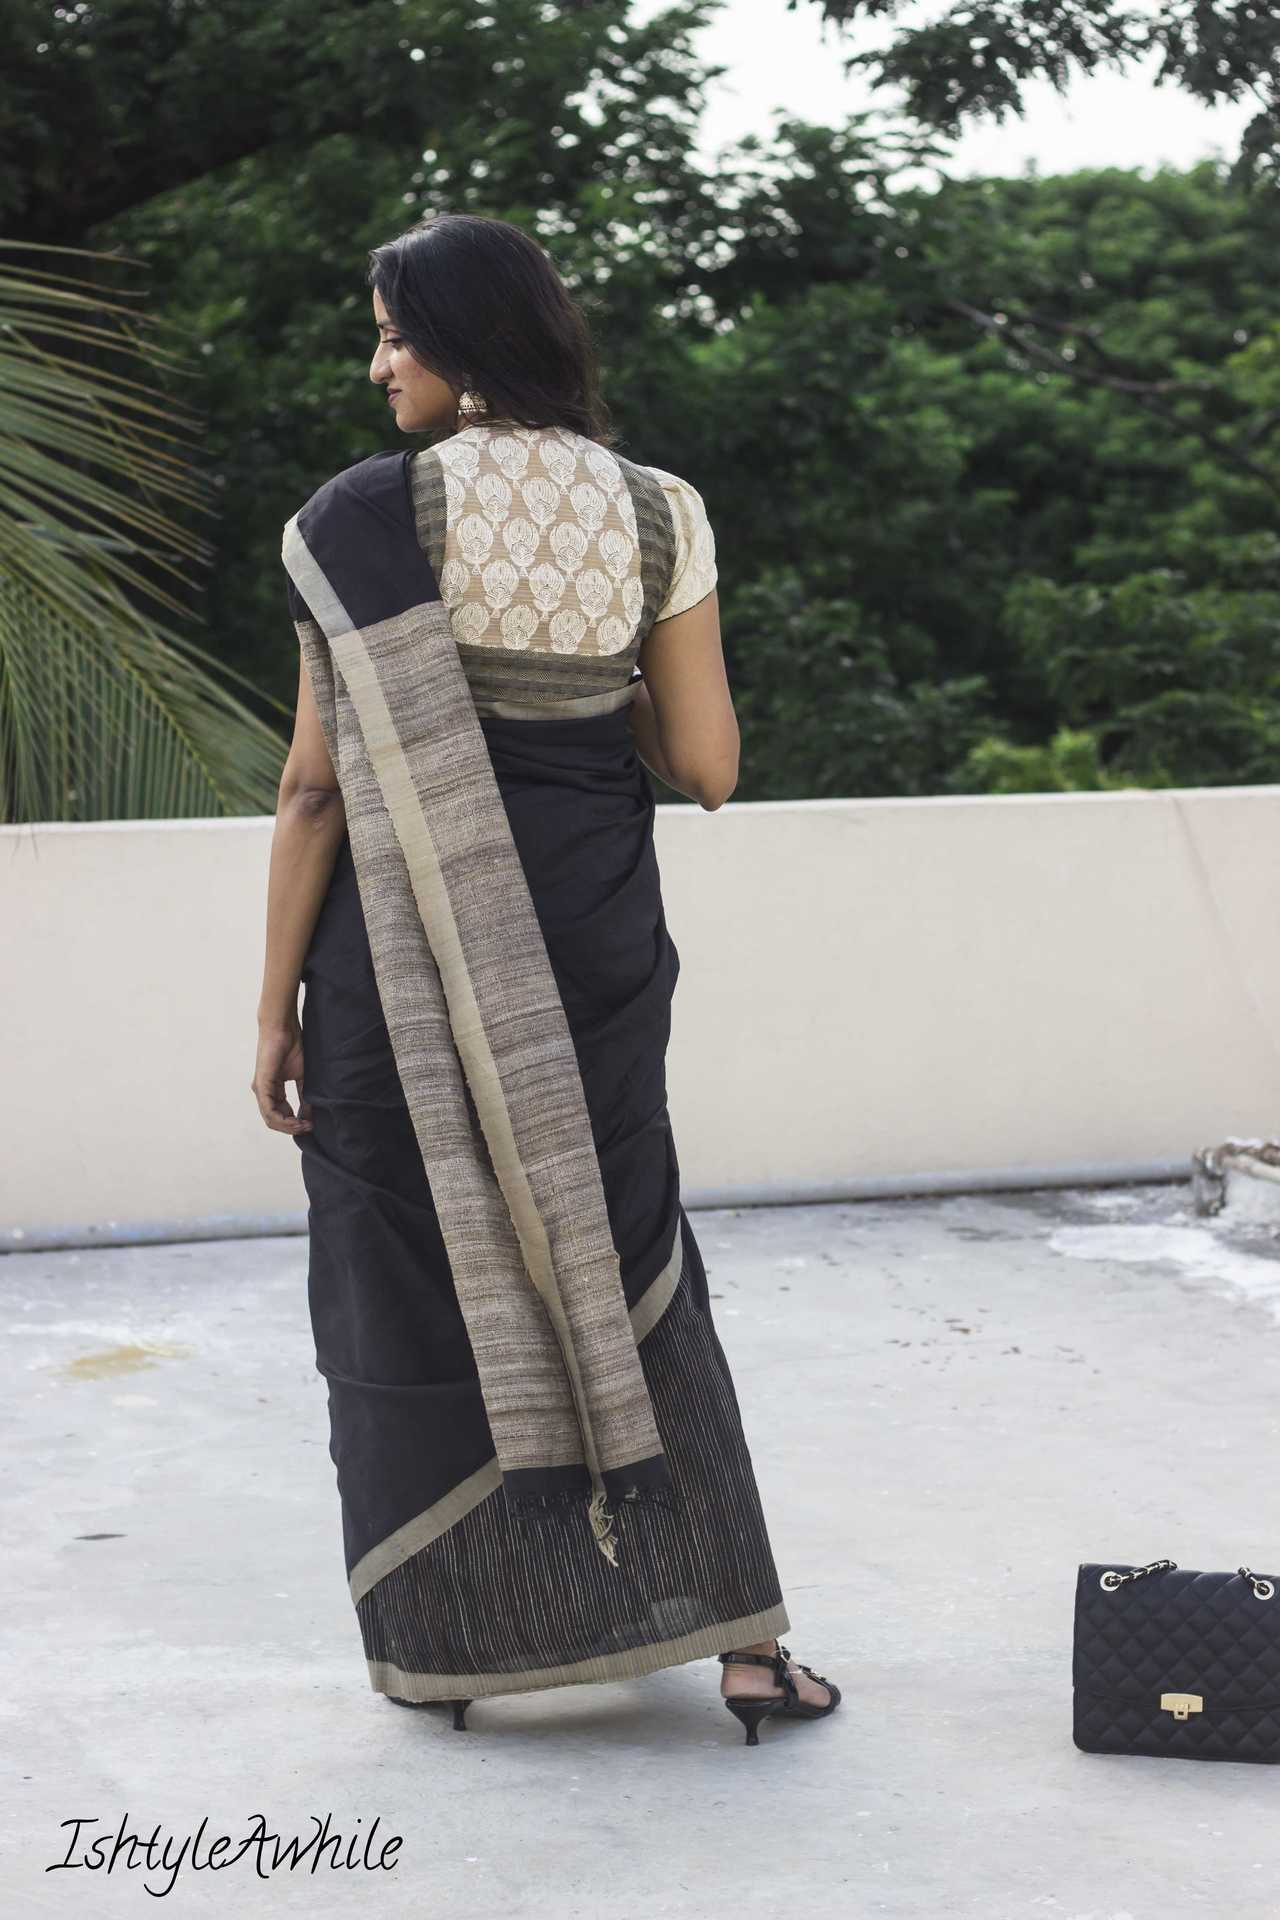 IshtyleAwhile - How_to style a black saree